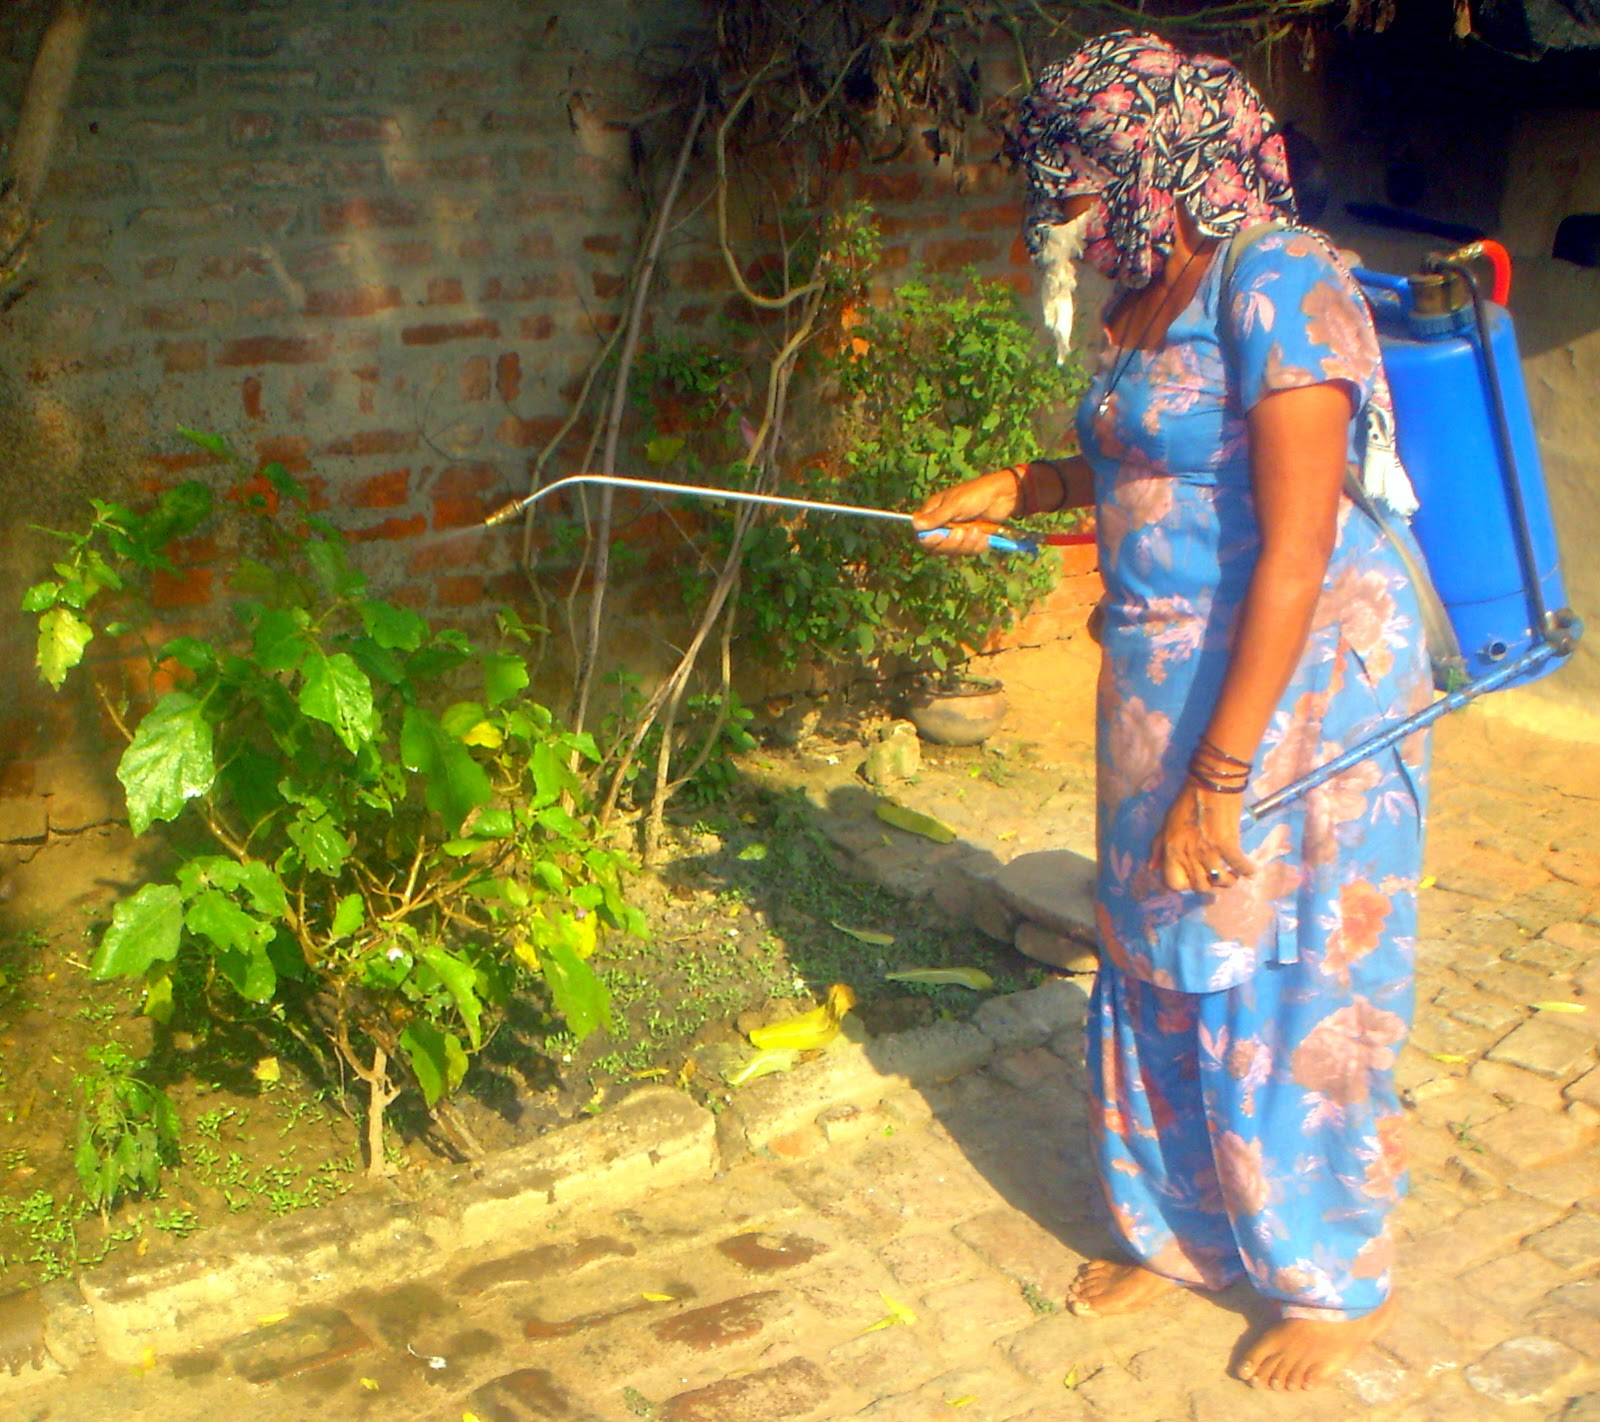 women empowerment in agriculture